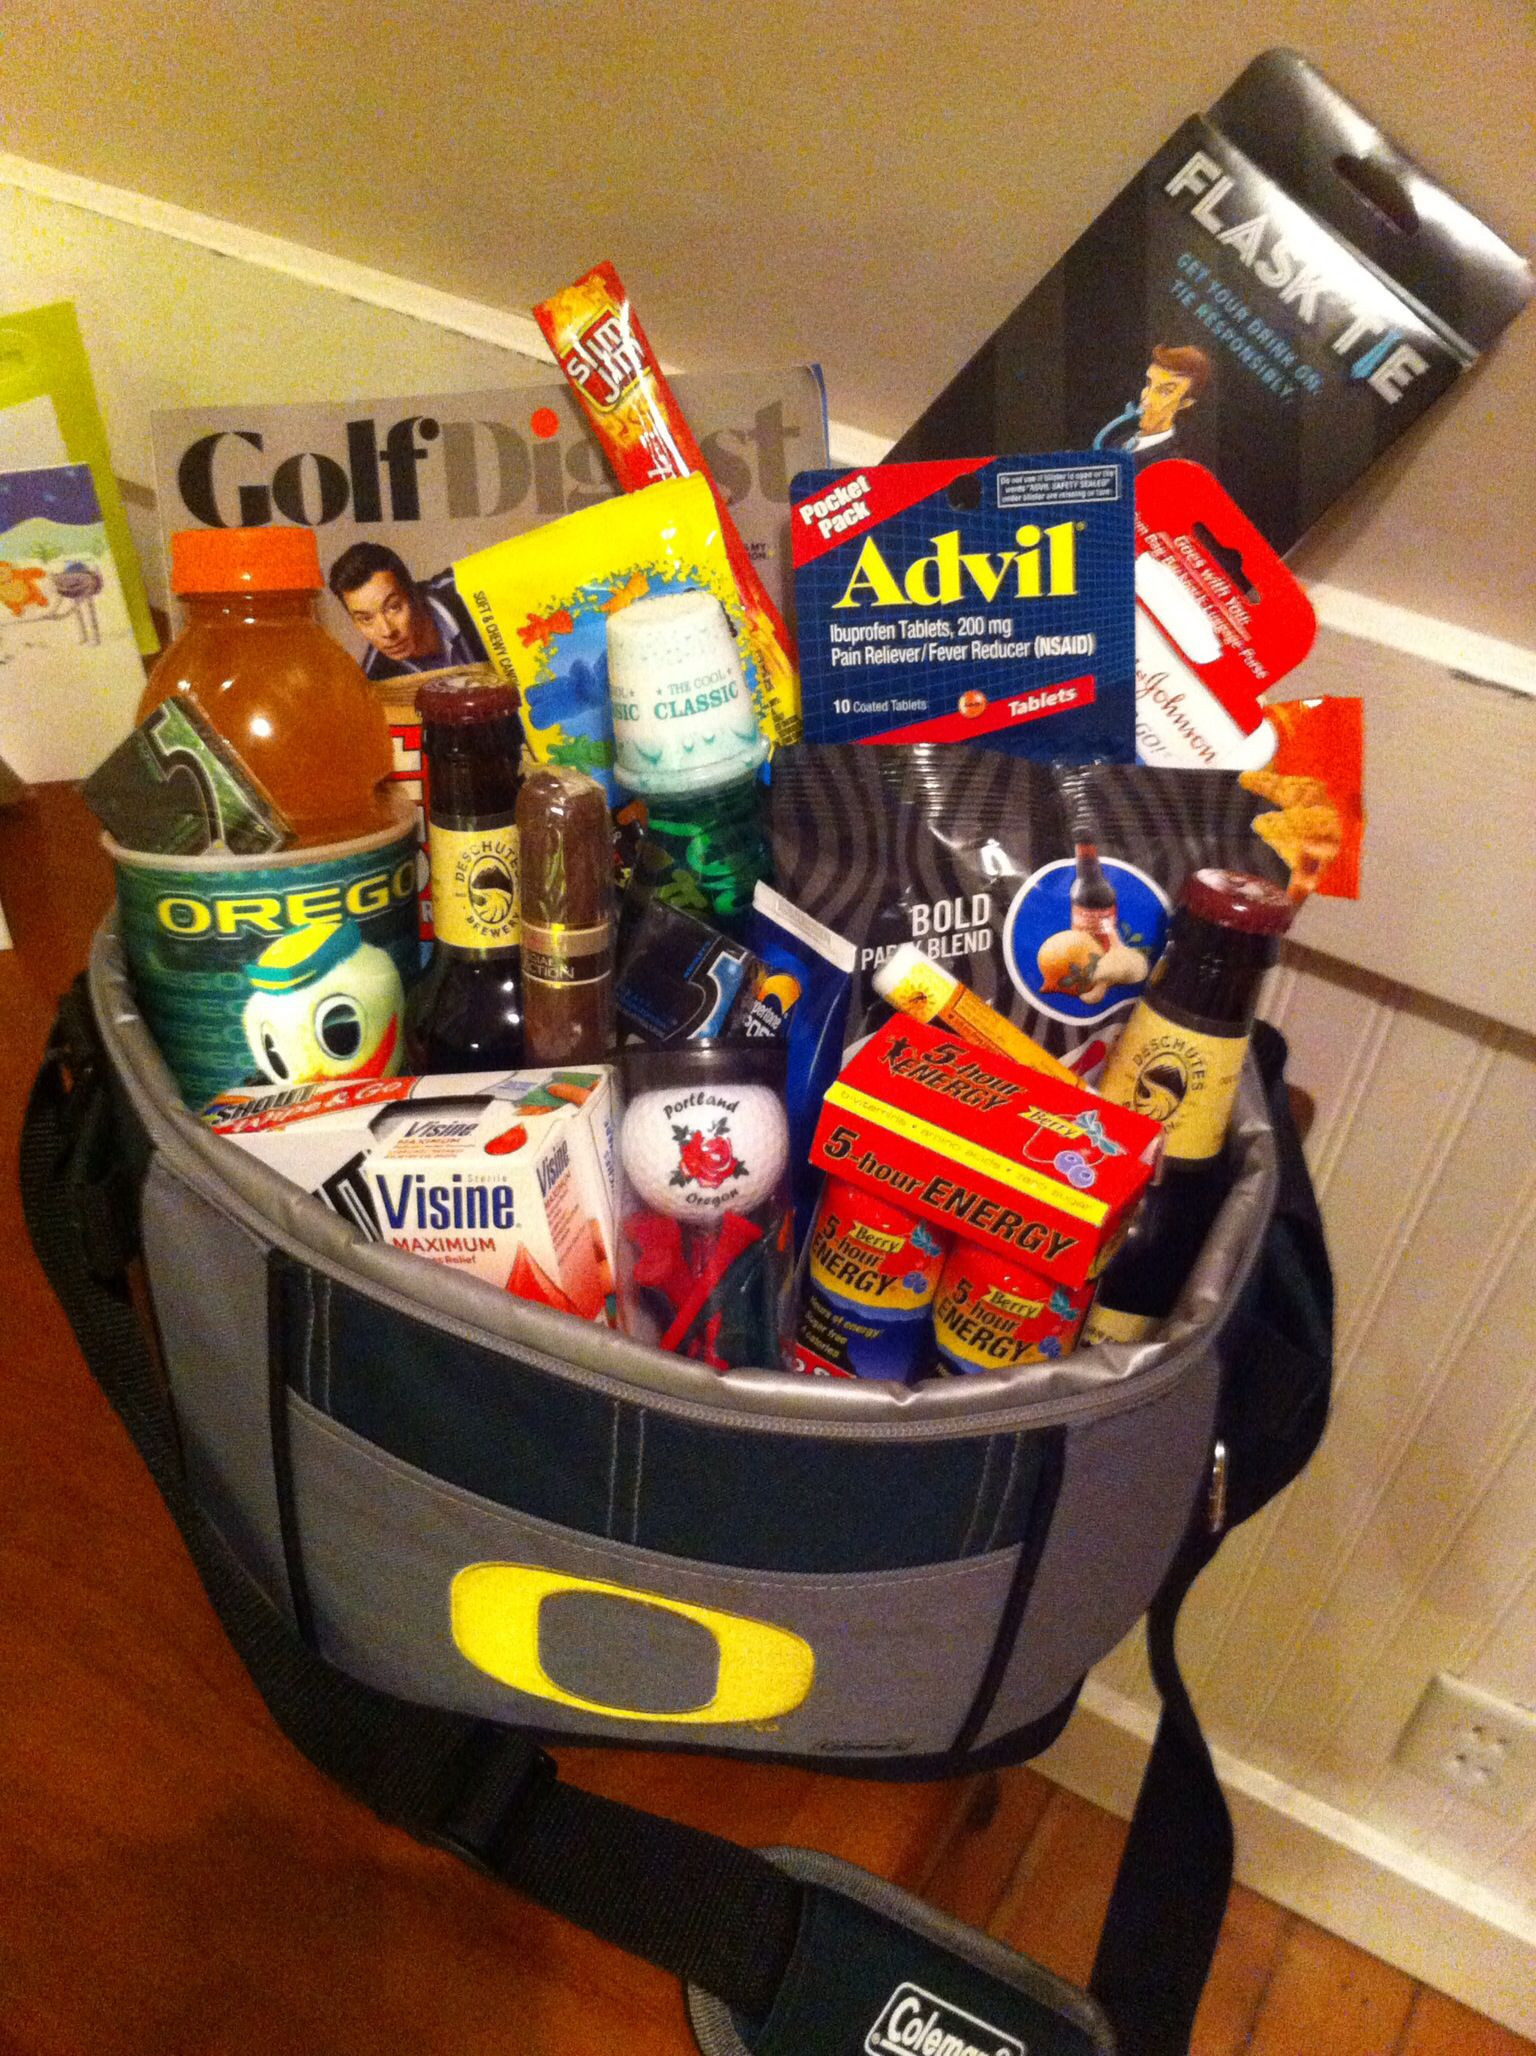 Best ideas about Bachelor Party Gift Ideas . Save or Pin Bachelor party golf weekend survival kit for groom to be Now.